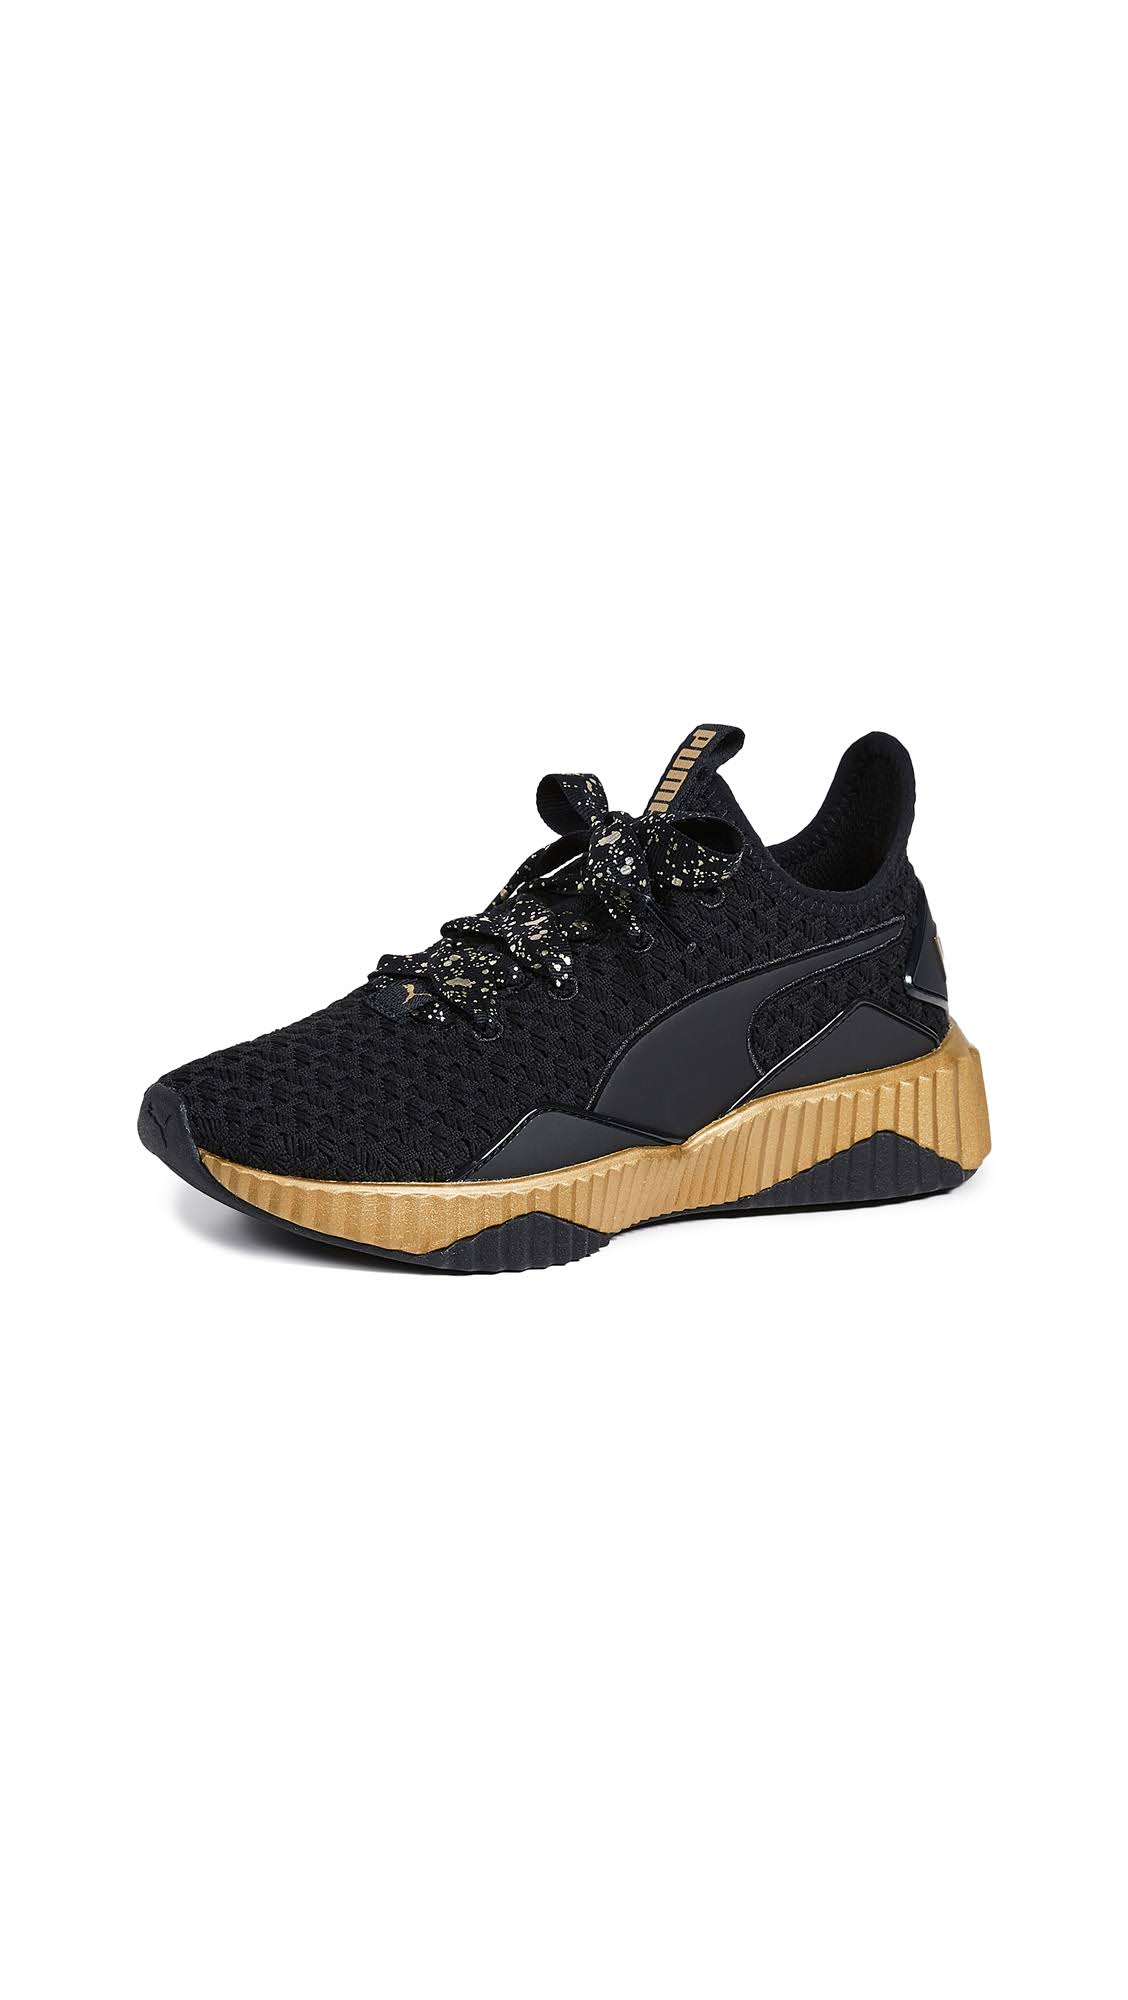 Black Sneakers Team Gold Defy Puma 7 Sparkle puma w1tnT6